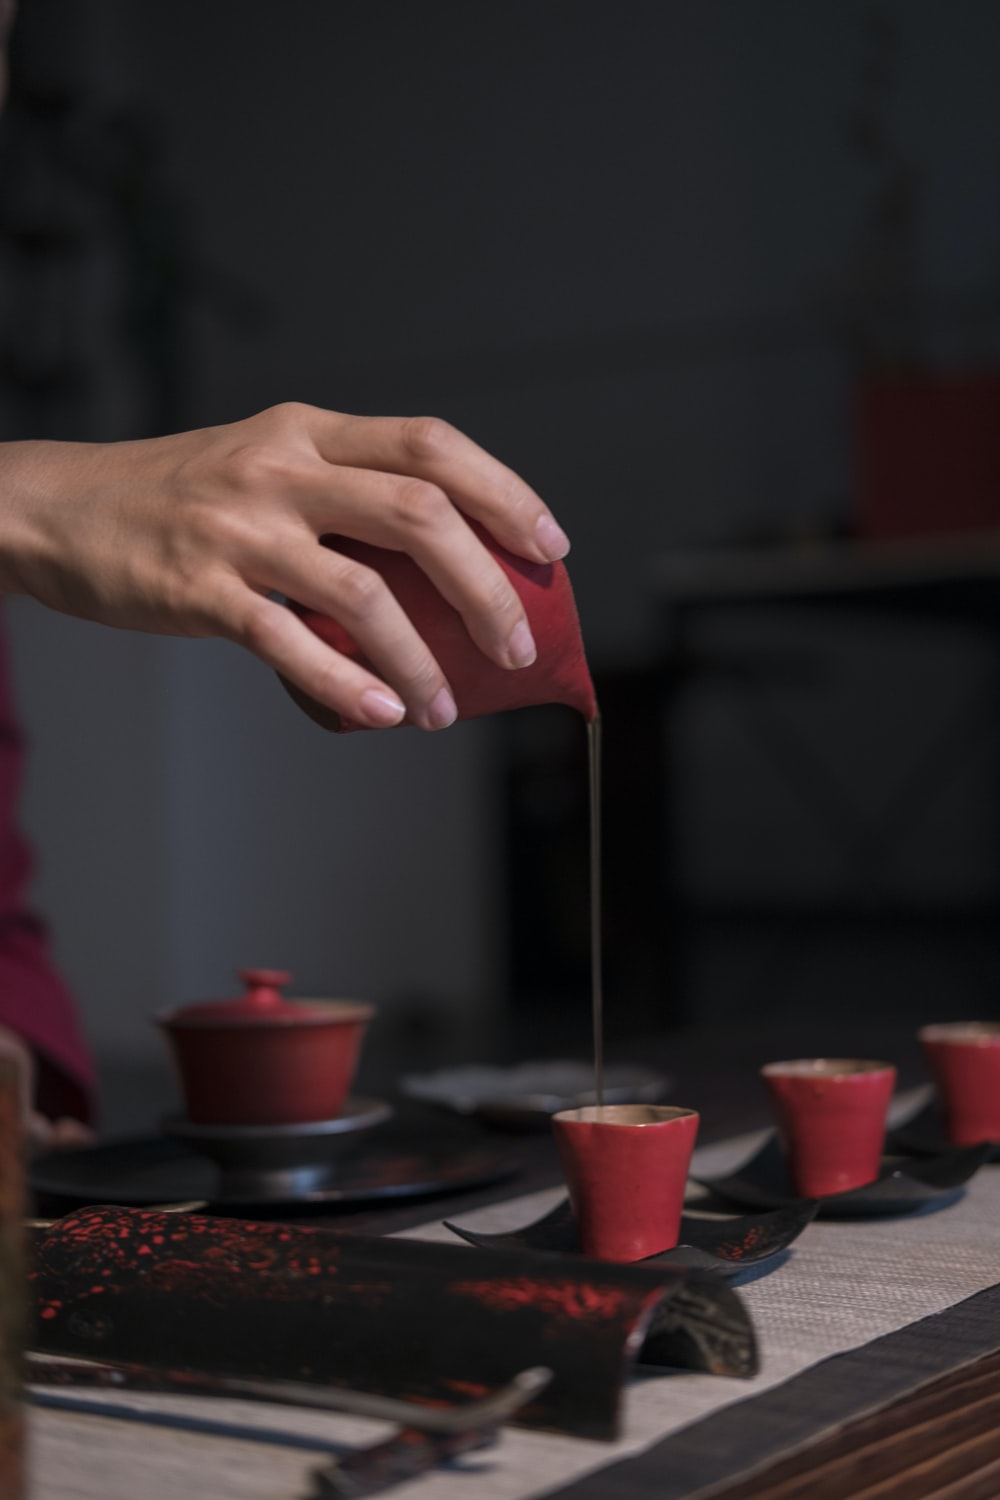 person pouring brown liquid on red cup